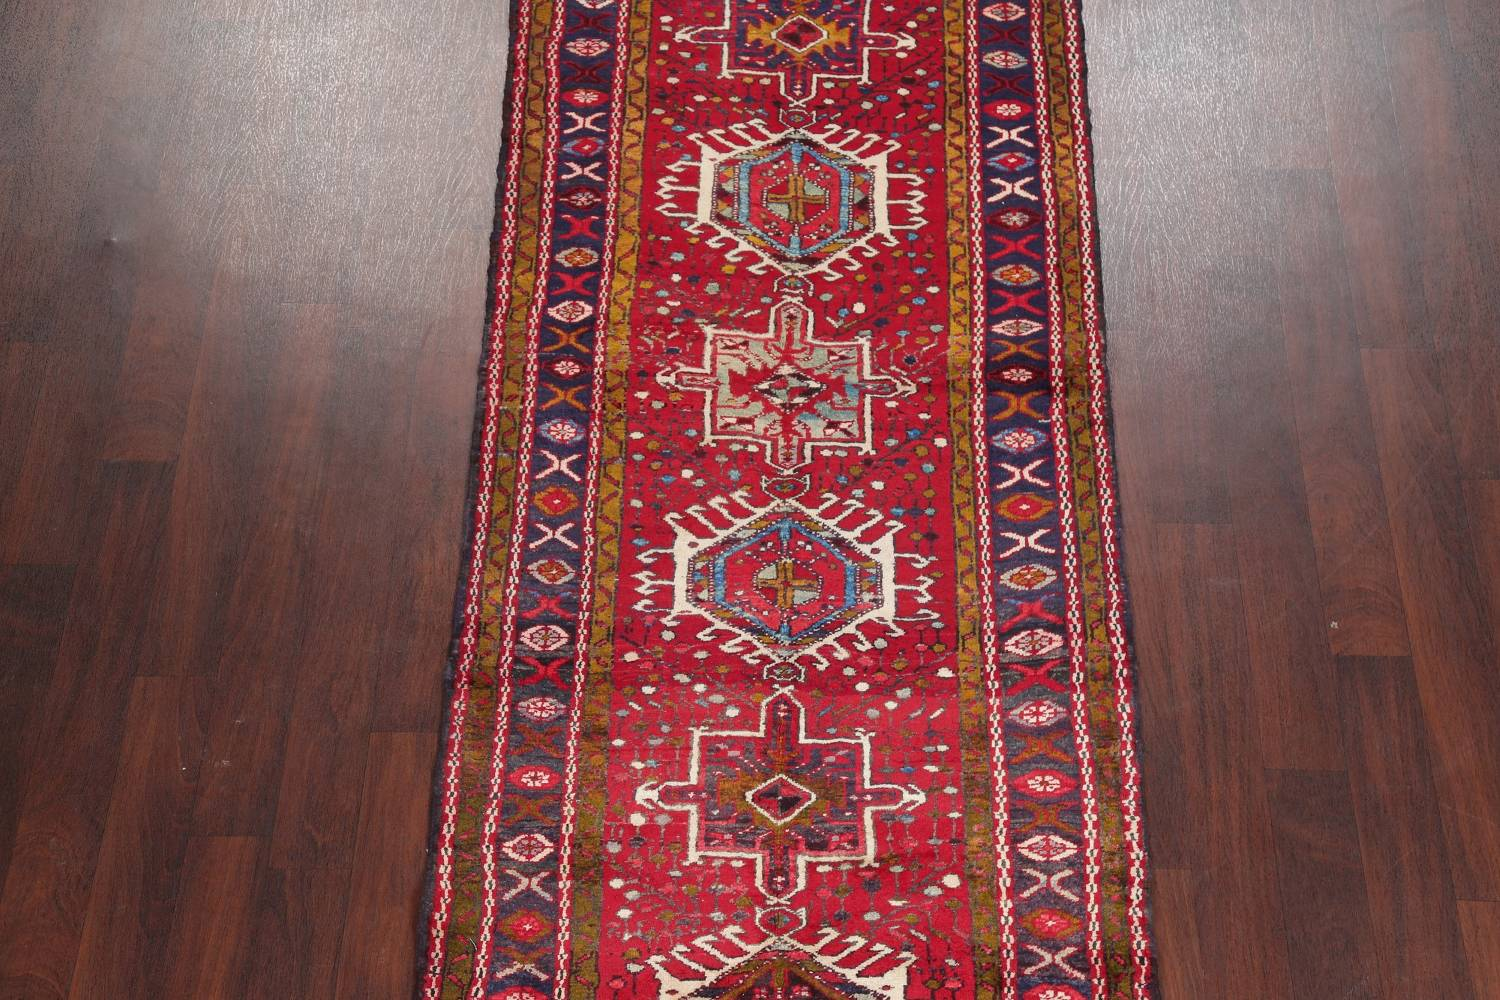 One-of-a-Kind Red Geometric Heriz Persian Hand-Knotted 4x13 Wool Runner Rug image 3